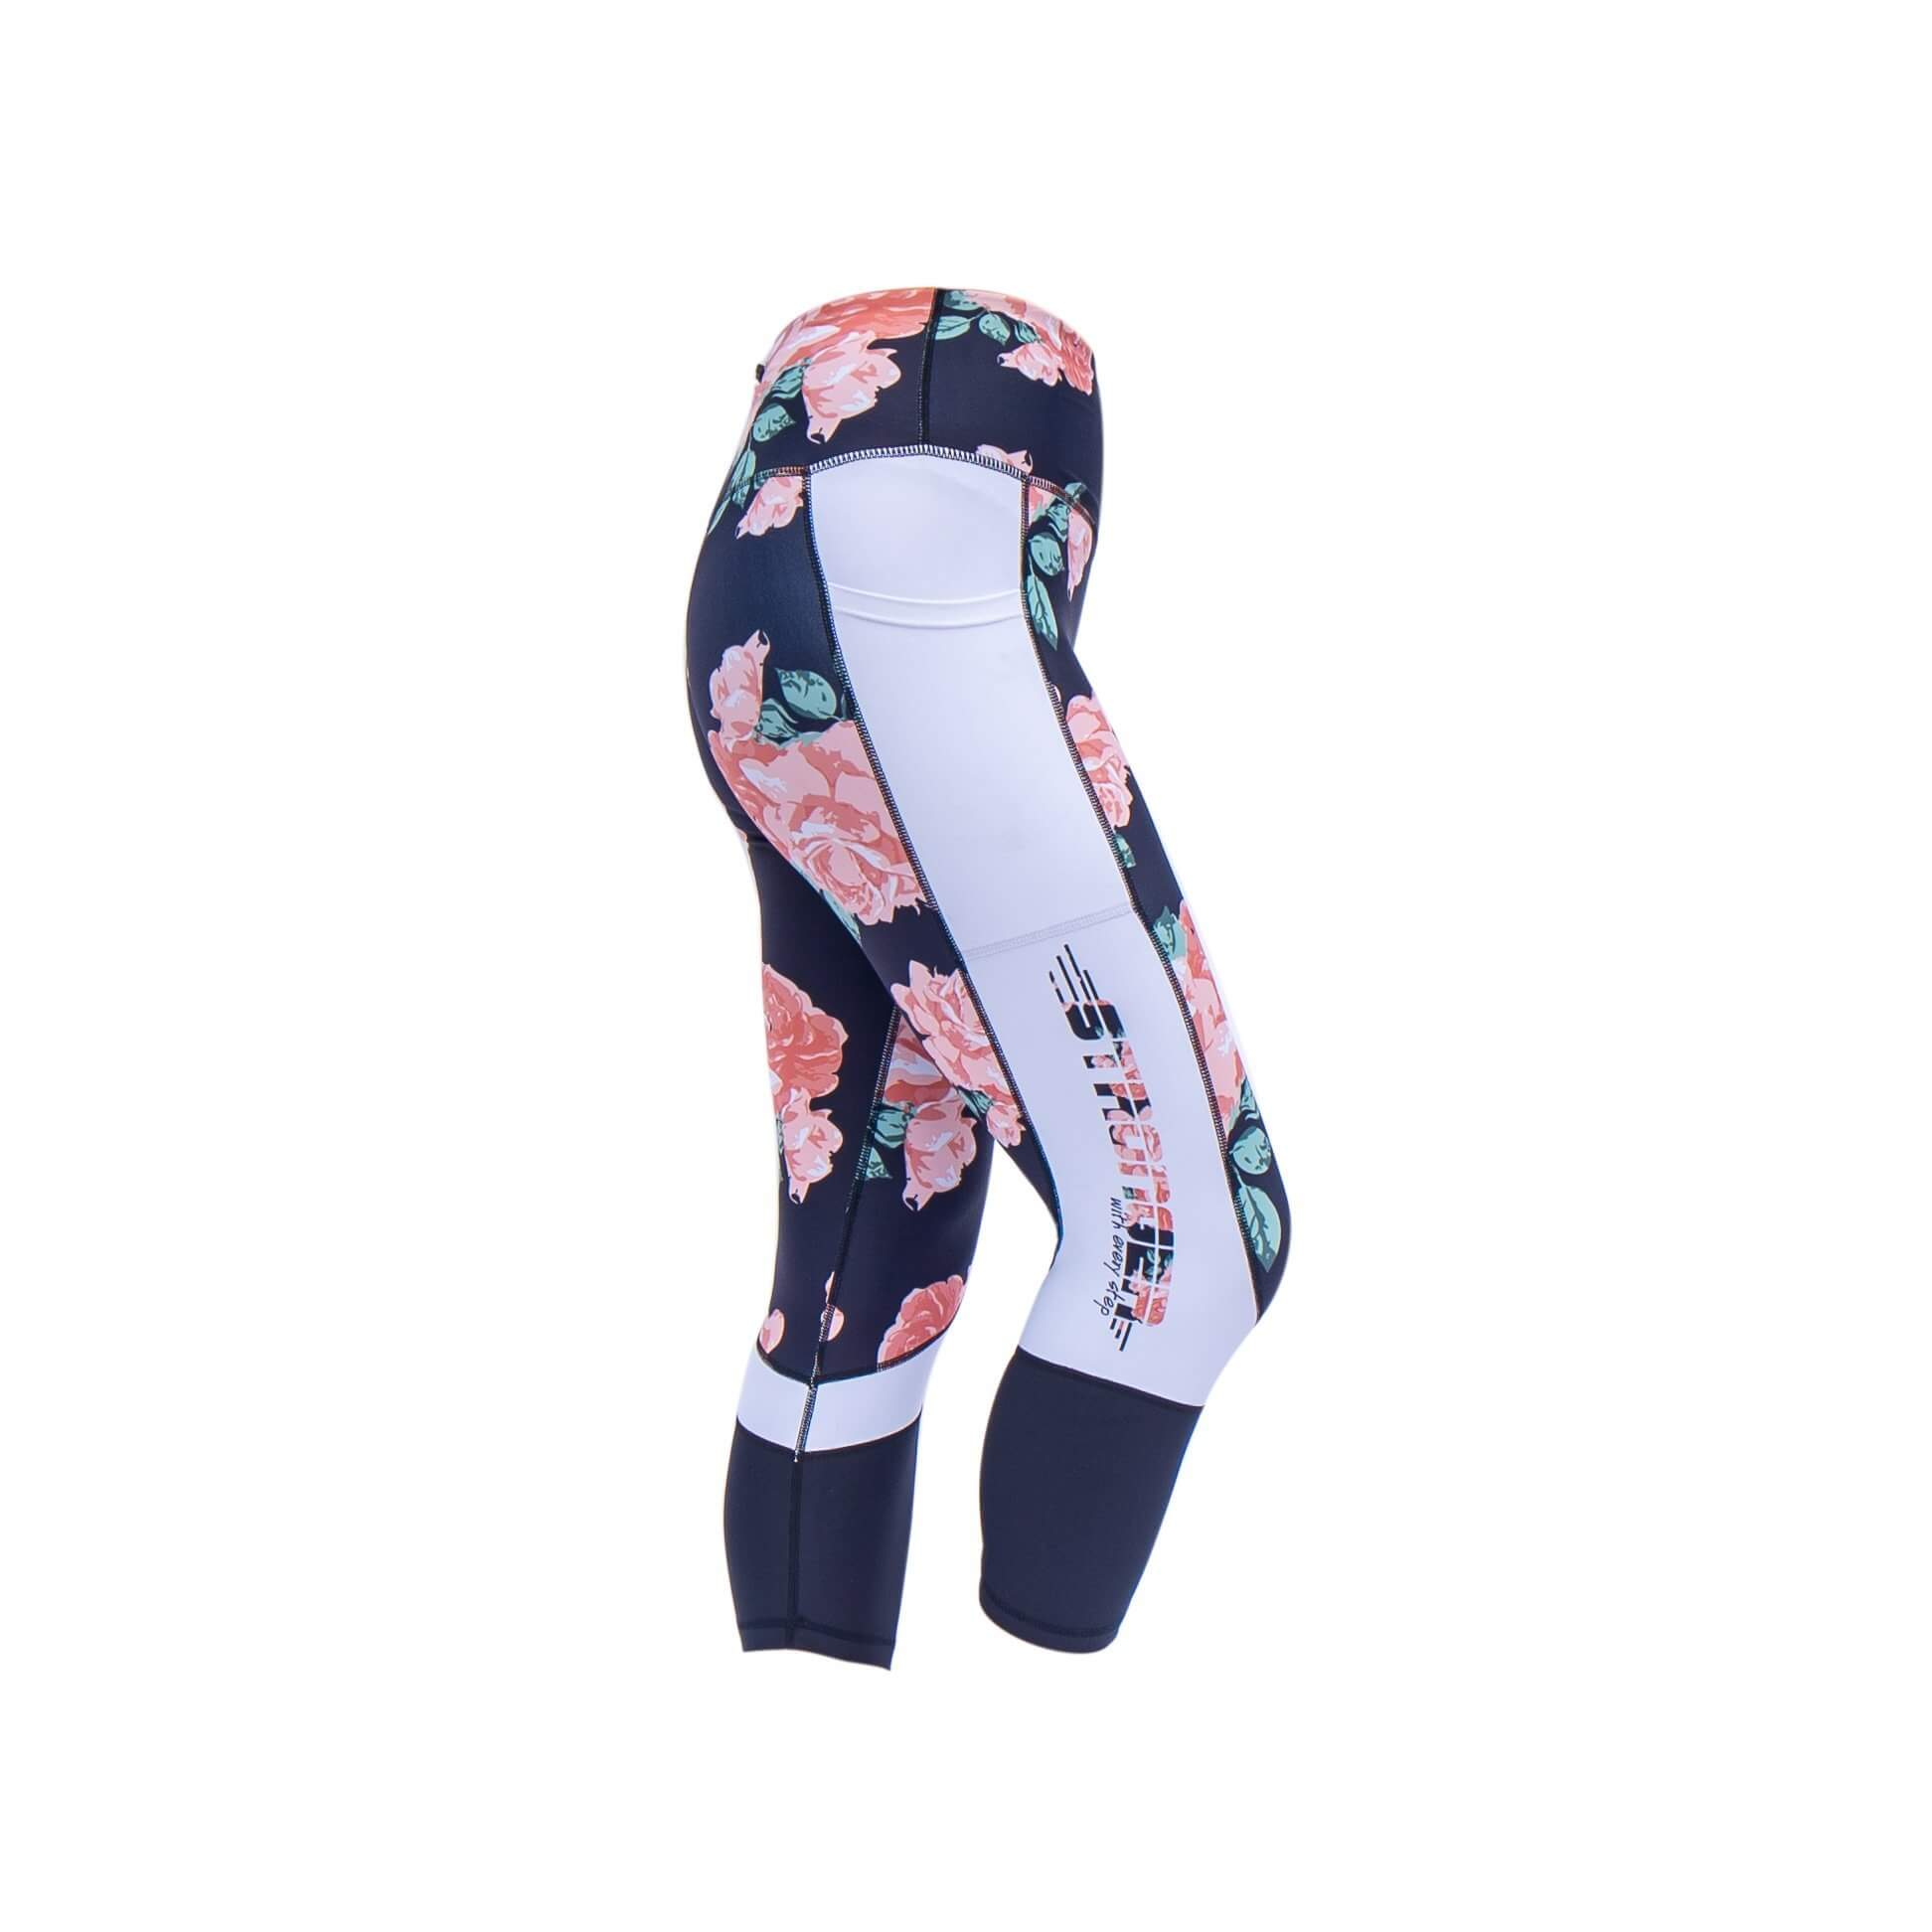 pretty roses illusion cropped leggings